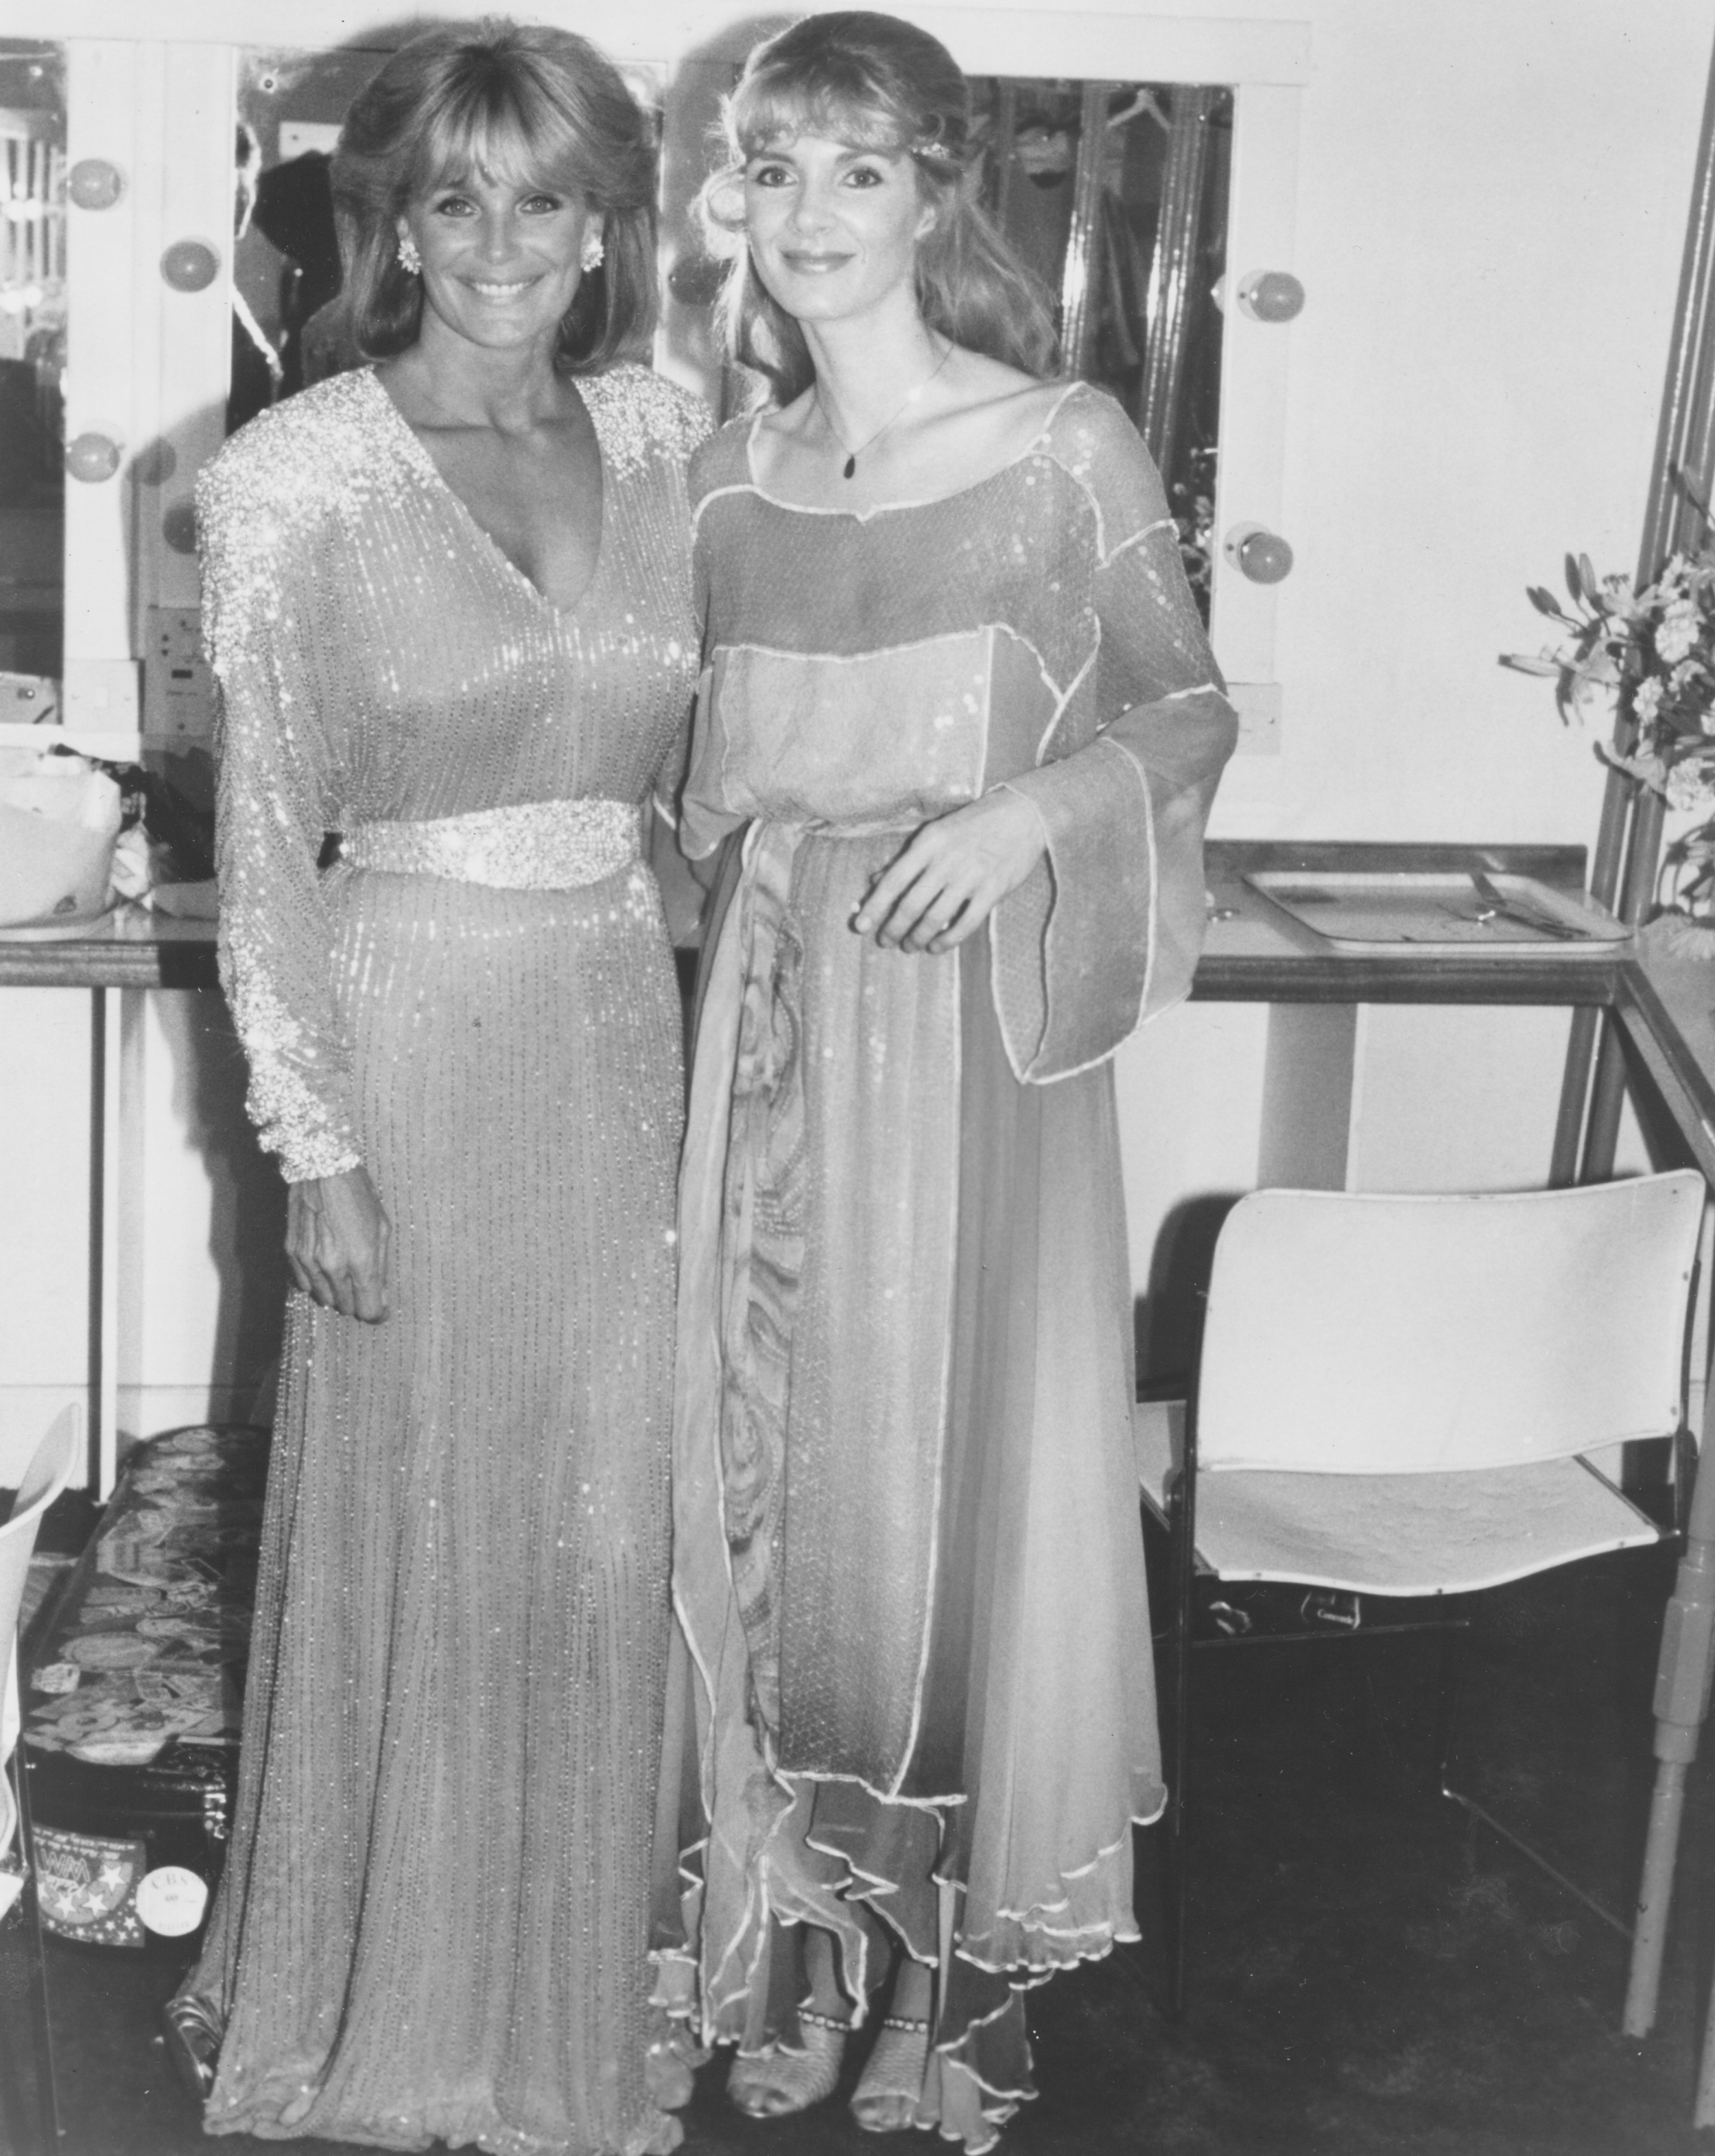 1985 with Linda Evans